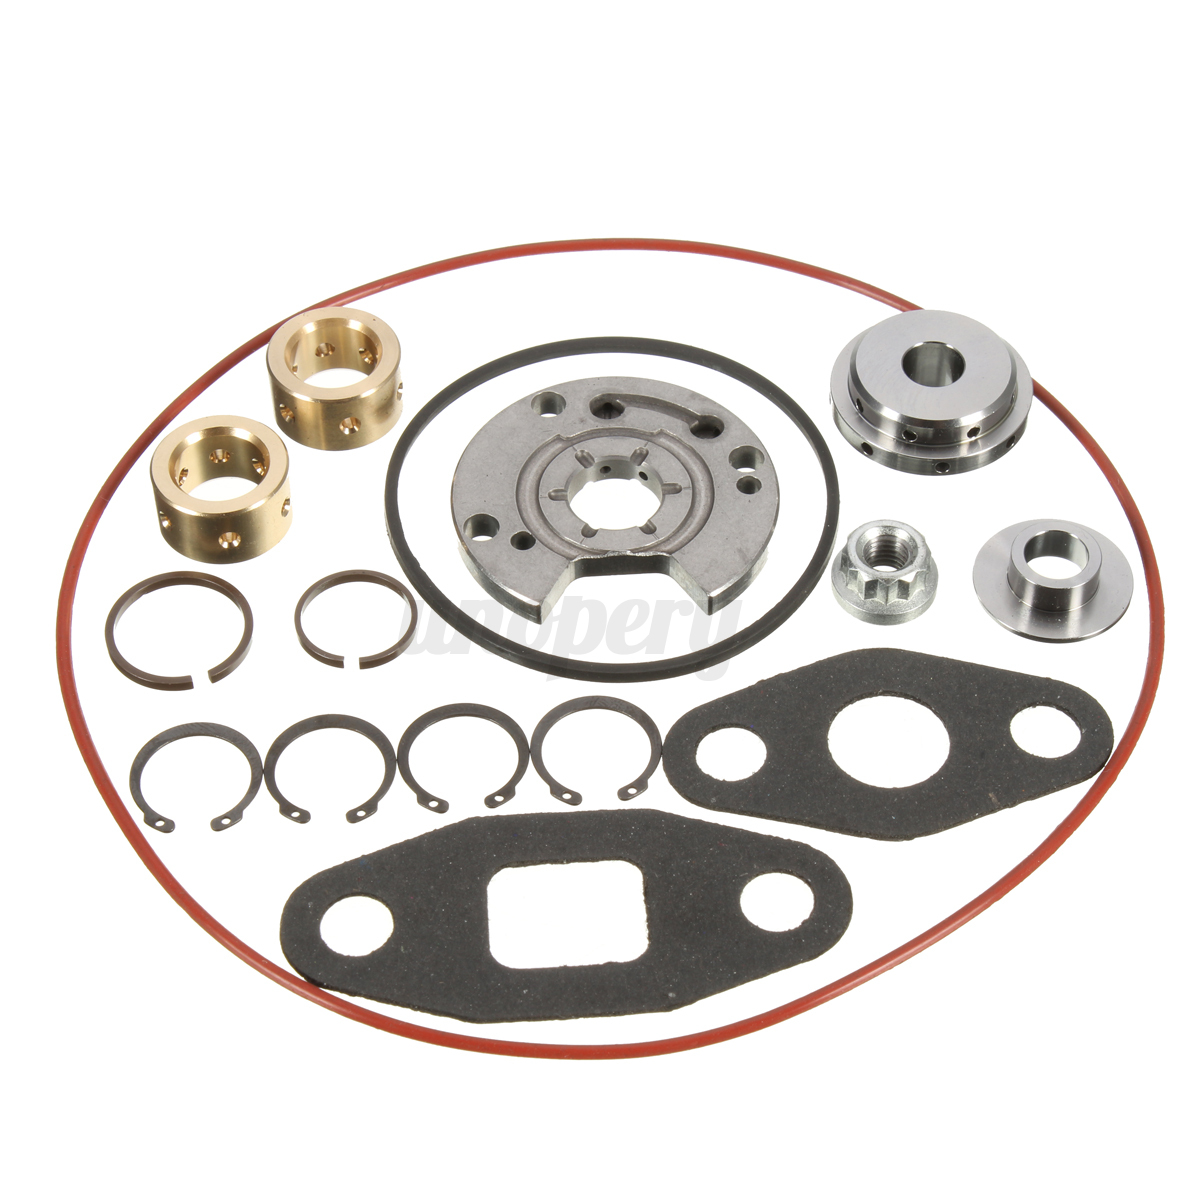 Garrett Turbocharger Rebuild Kits: TURBO TURBOCHARGER REBUILD REPAIR SERVICE KIT FOR GARRETT